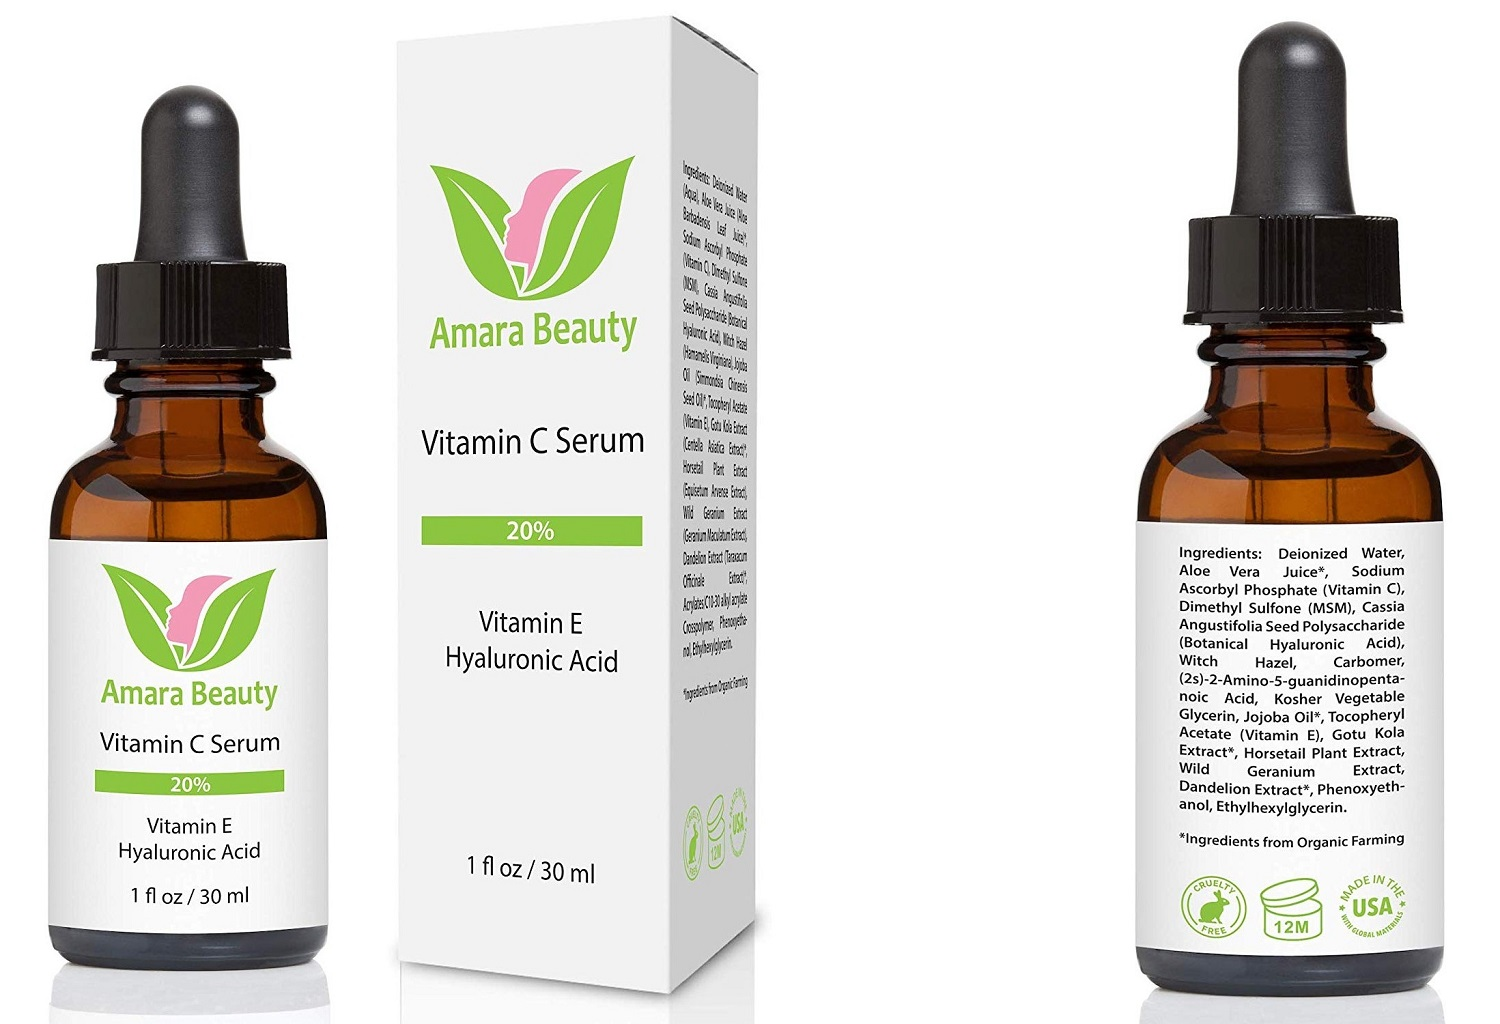 amara beauty vitamin c serum